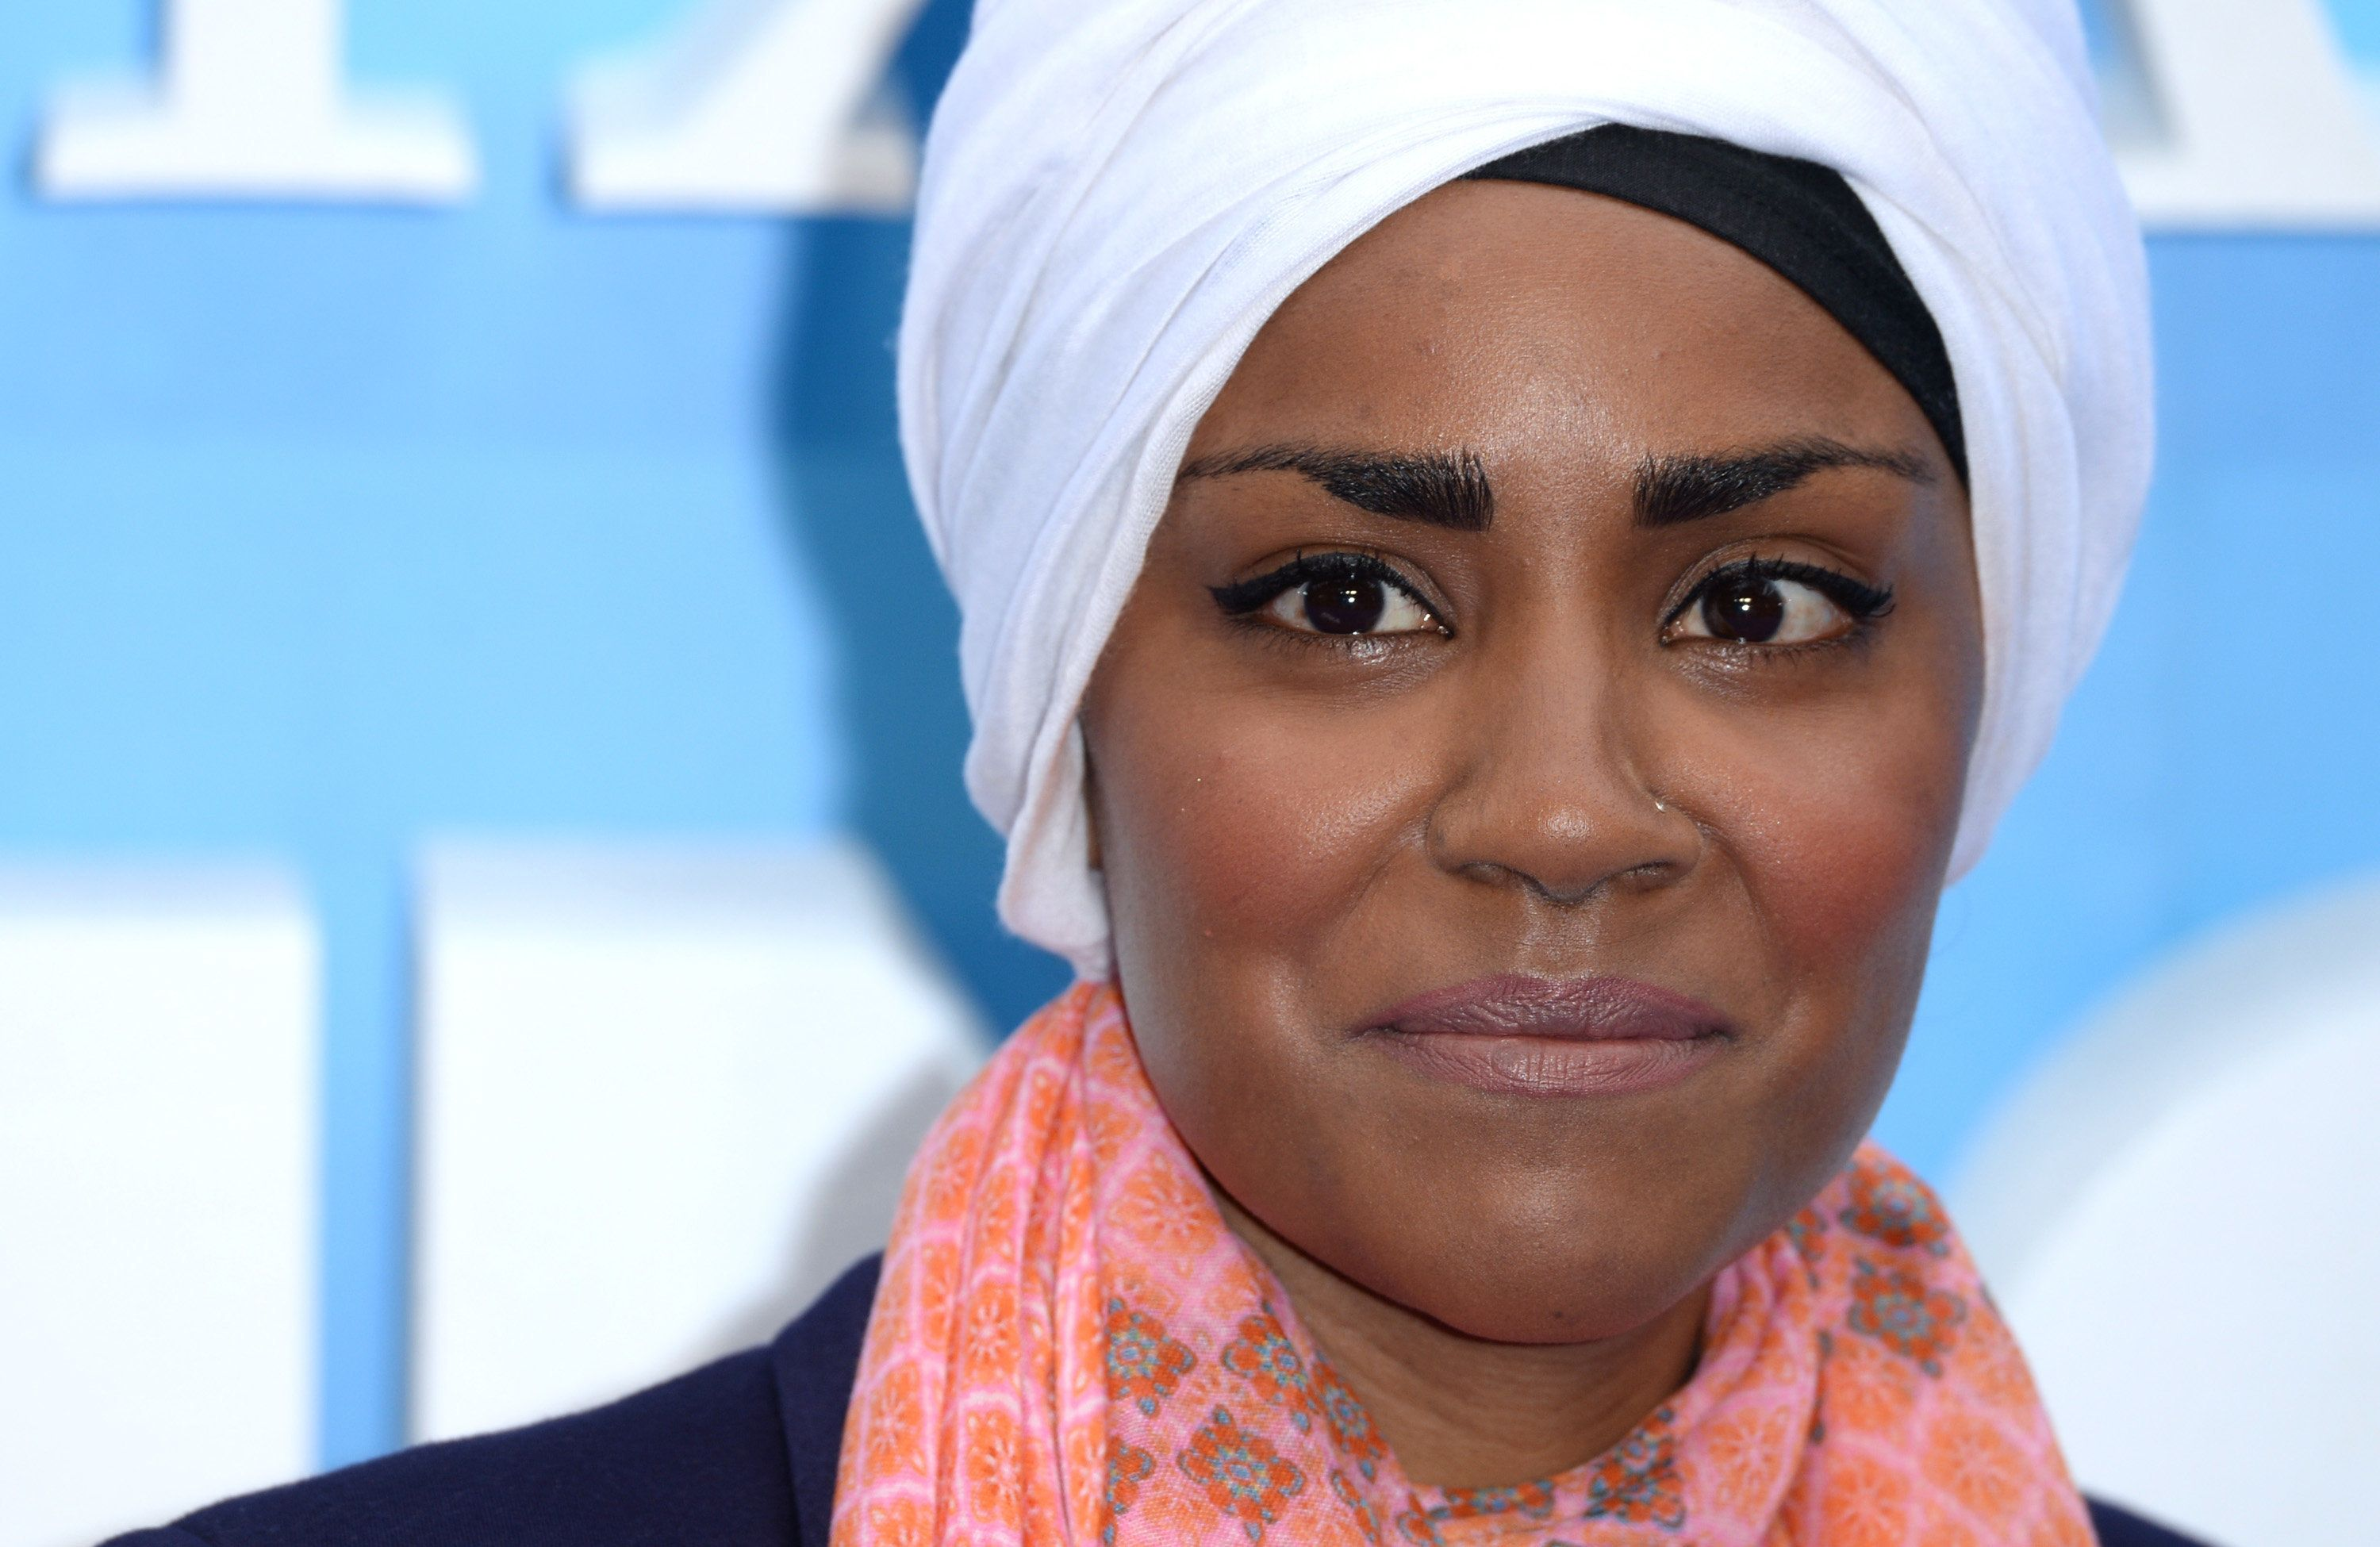 Nadiya Hussain Explains Why She Refuses To 'Just Ignore' Racist